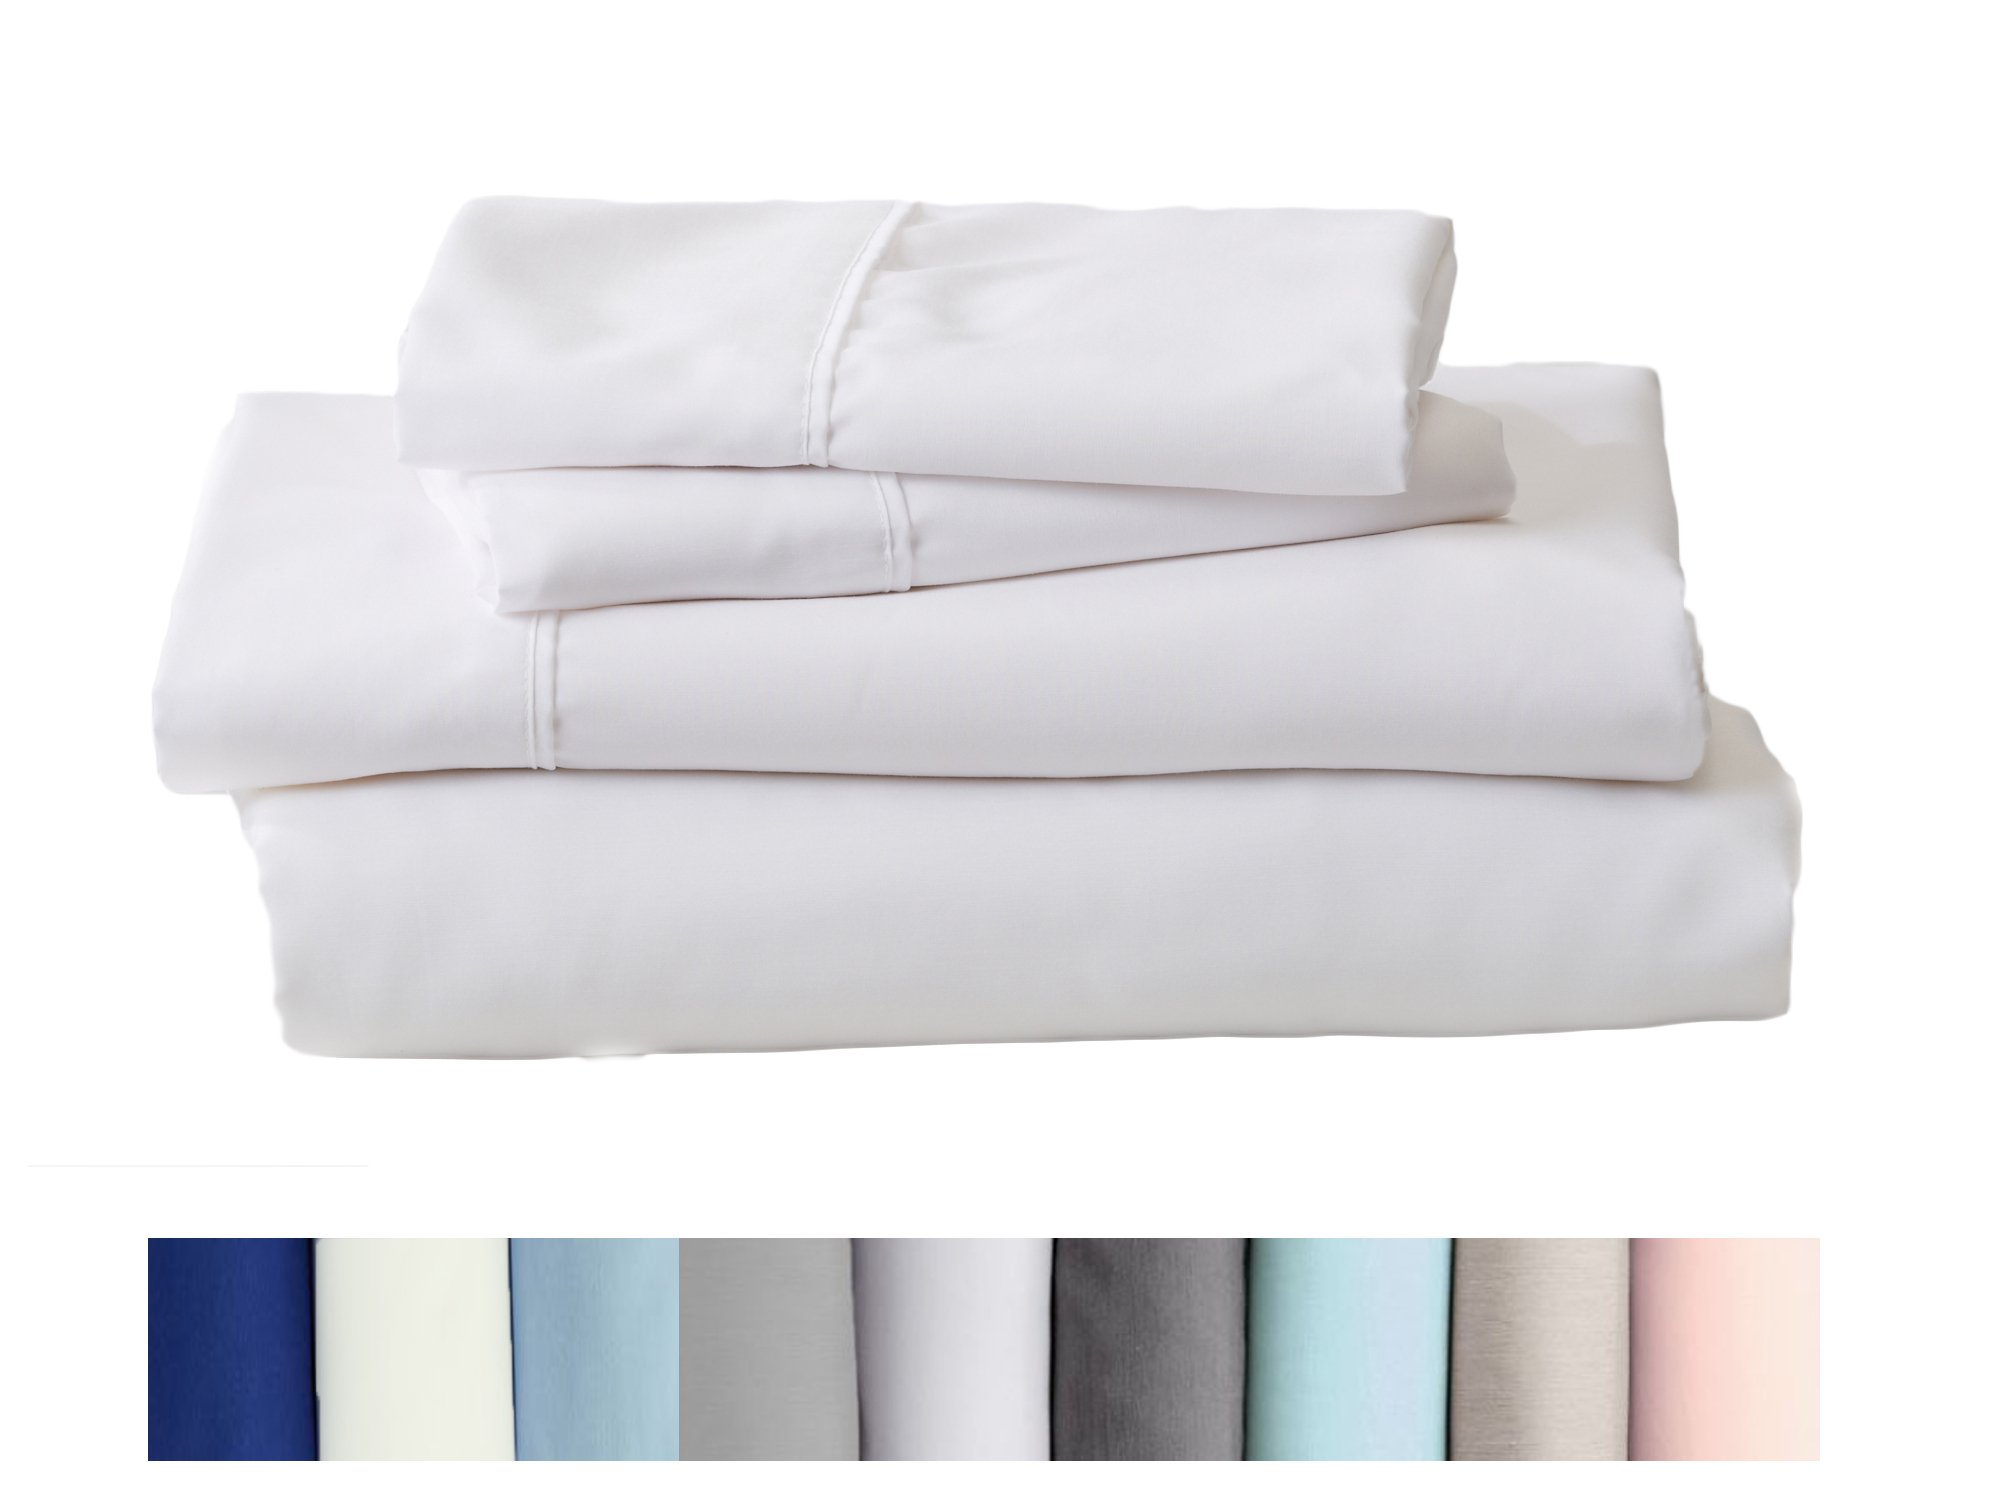 Home Fashion Designs Claudette Collection Egyptian Quality Double Brushed Microfiber Sheet Set. Hypoallergenic, Wrinkle & Fade Resistant Hotel Luxury Bed Sheets Brand. (Twin, White)